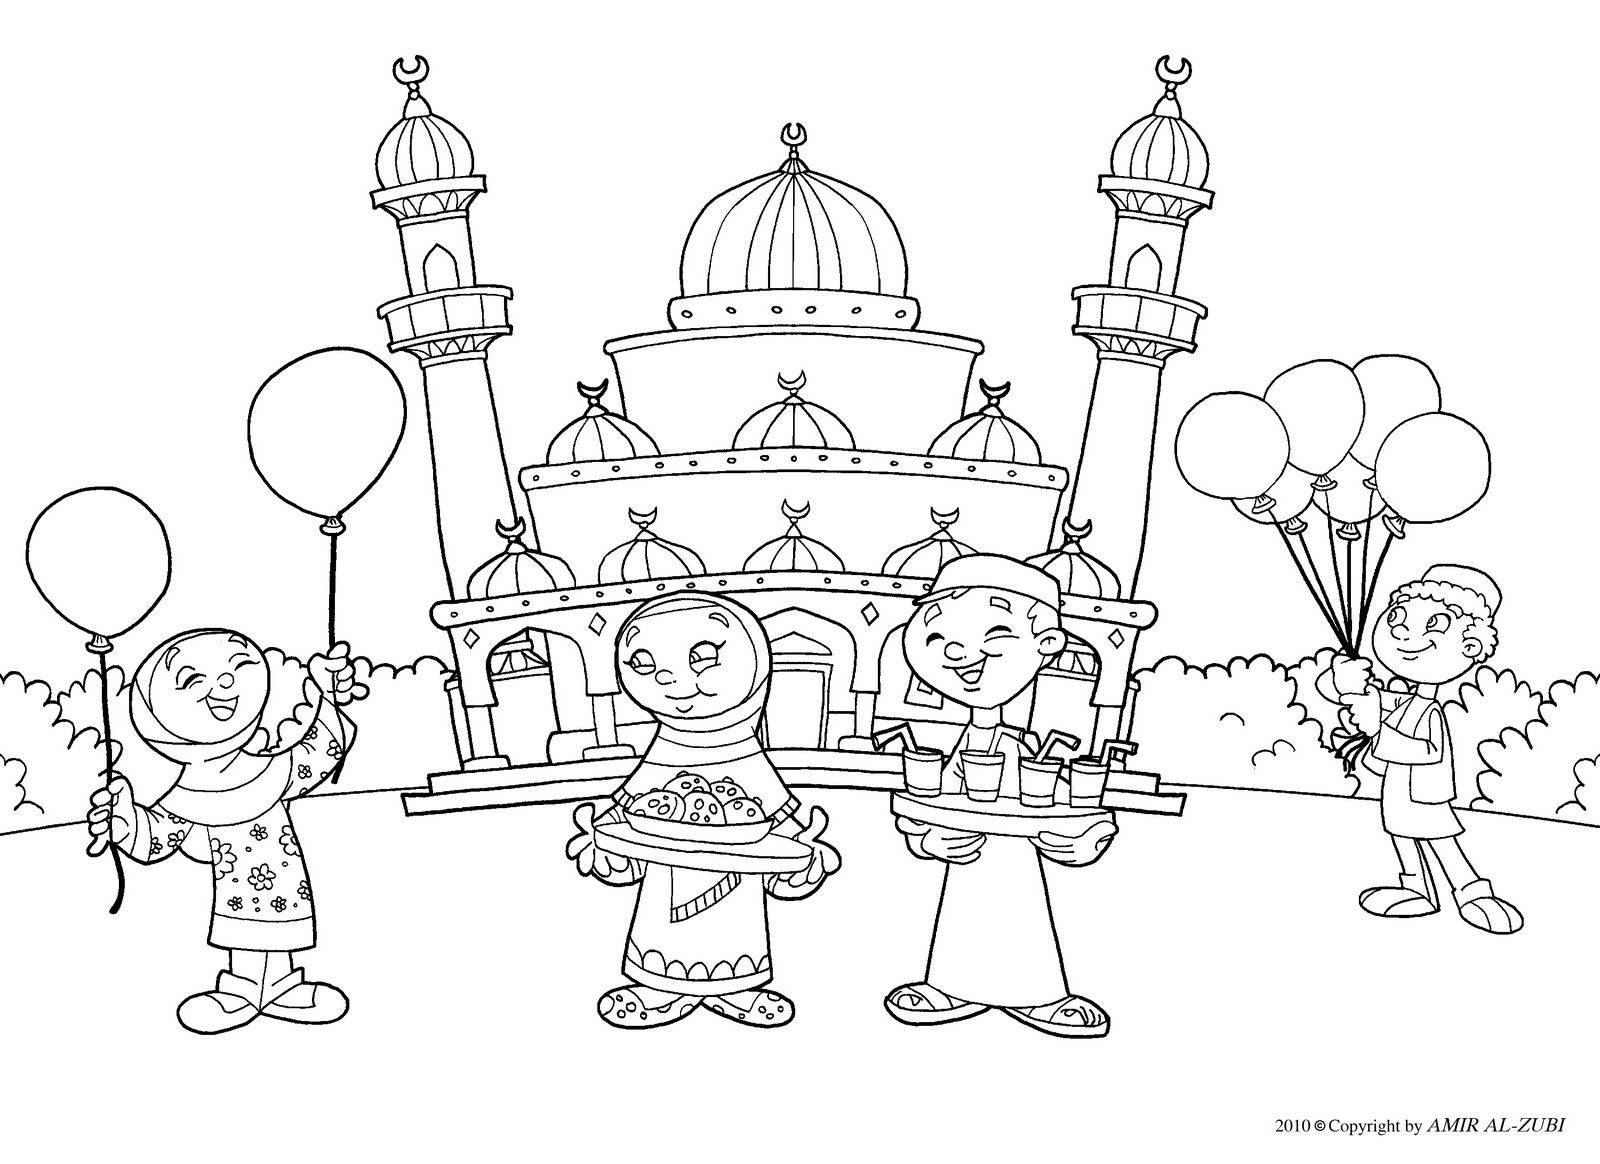 Islamic Coloring Pages Free Http Www Wallpaperartdesignhd Us Islamic Coloring Pages Free 46977 Muslim Holidays Coloring For Kids Coloring Pages